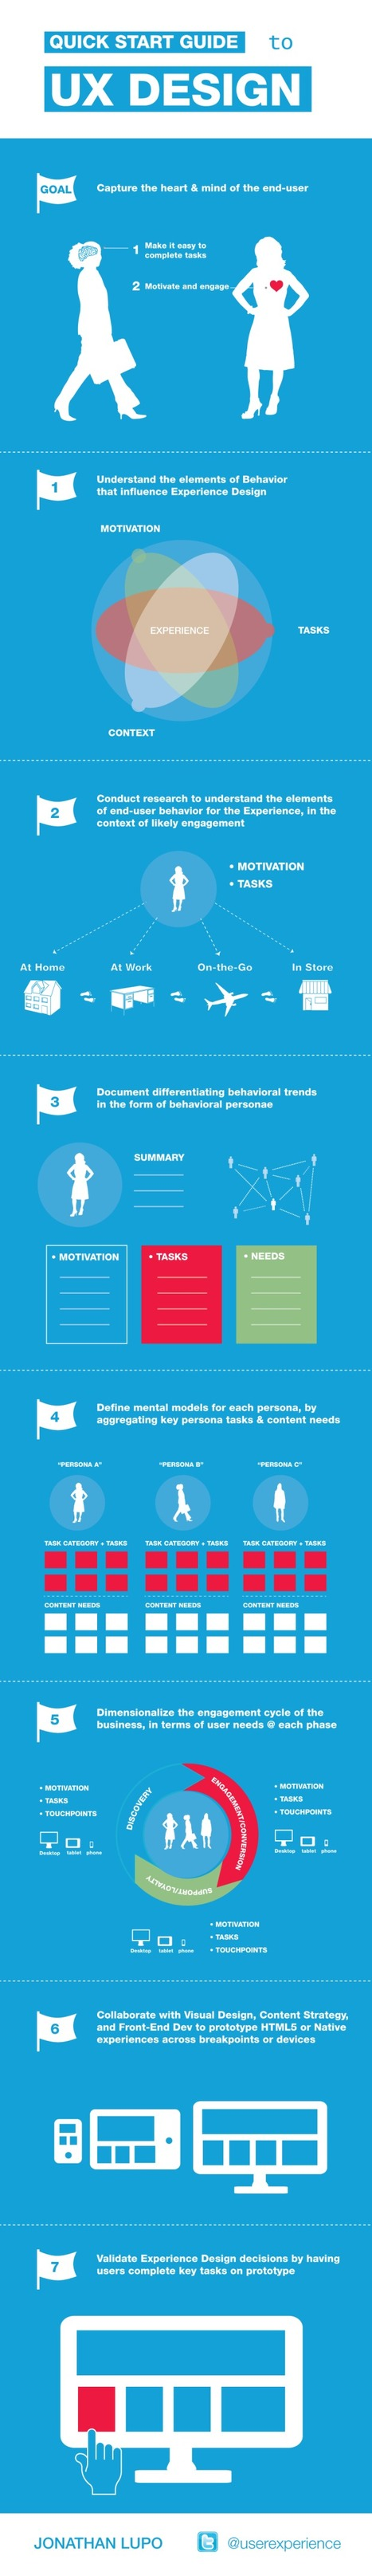 A Start Guide to UX Design #Infographic | WebsiteDesign | Scoop.it